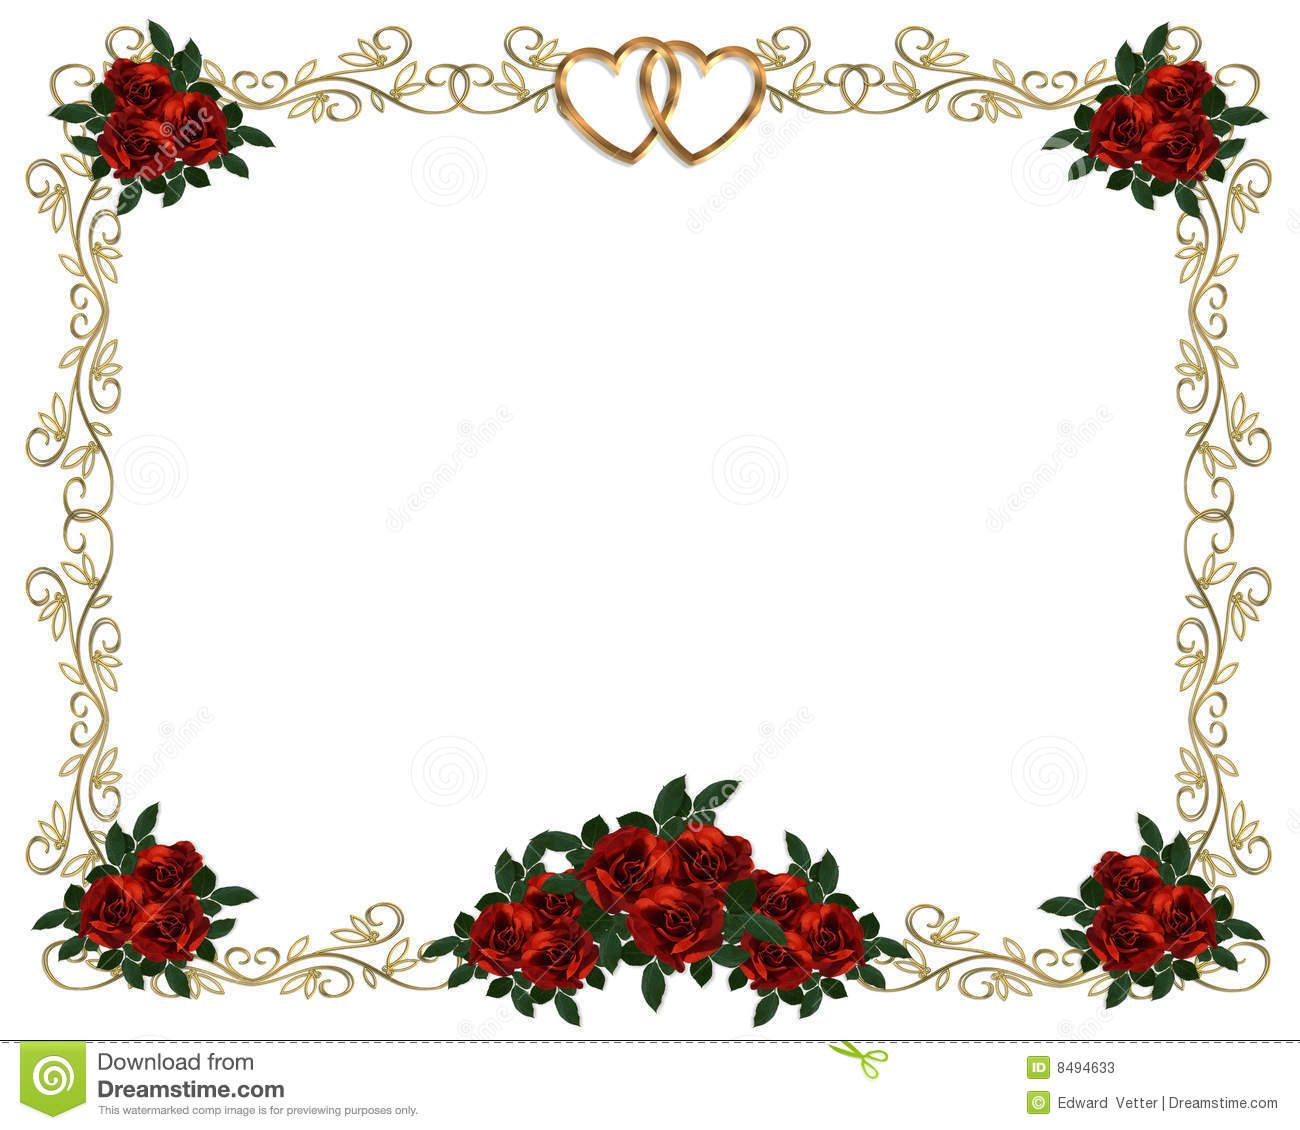 Red Roses Border Wedding Invitation Stock Photos - Image ...